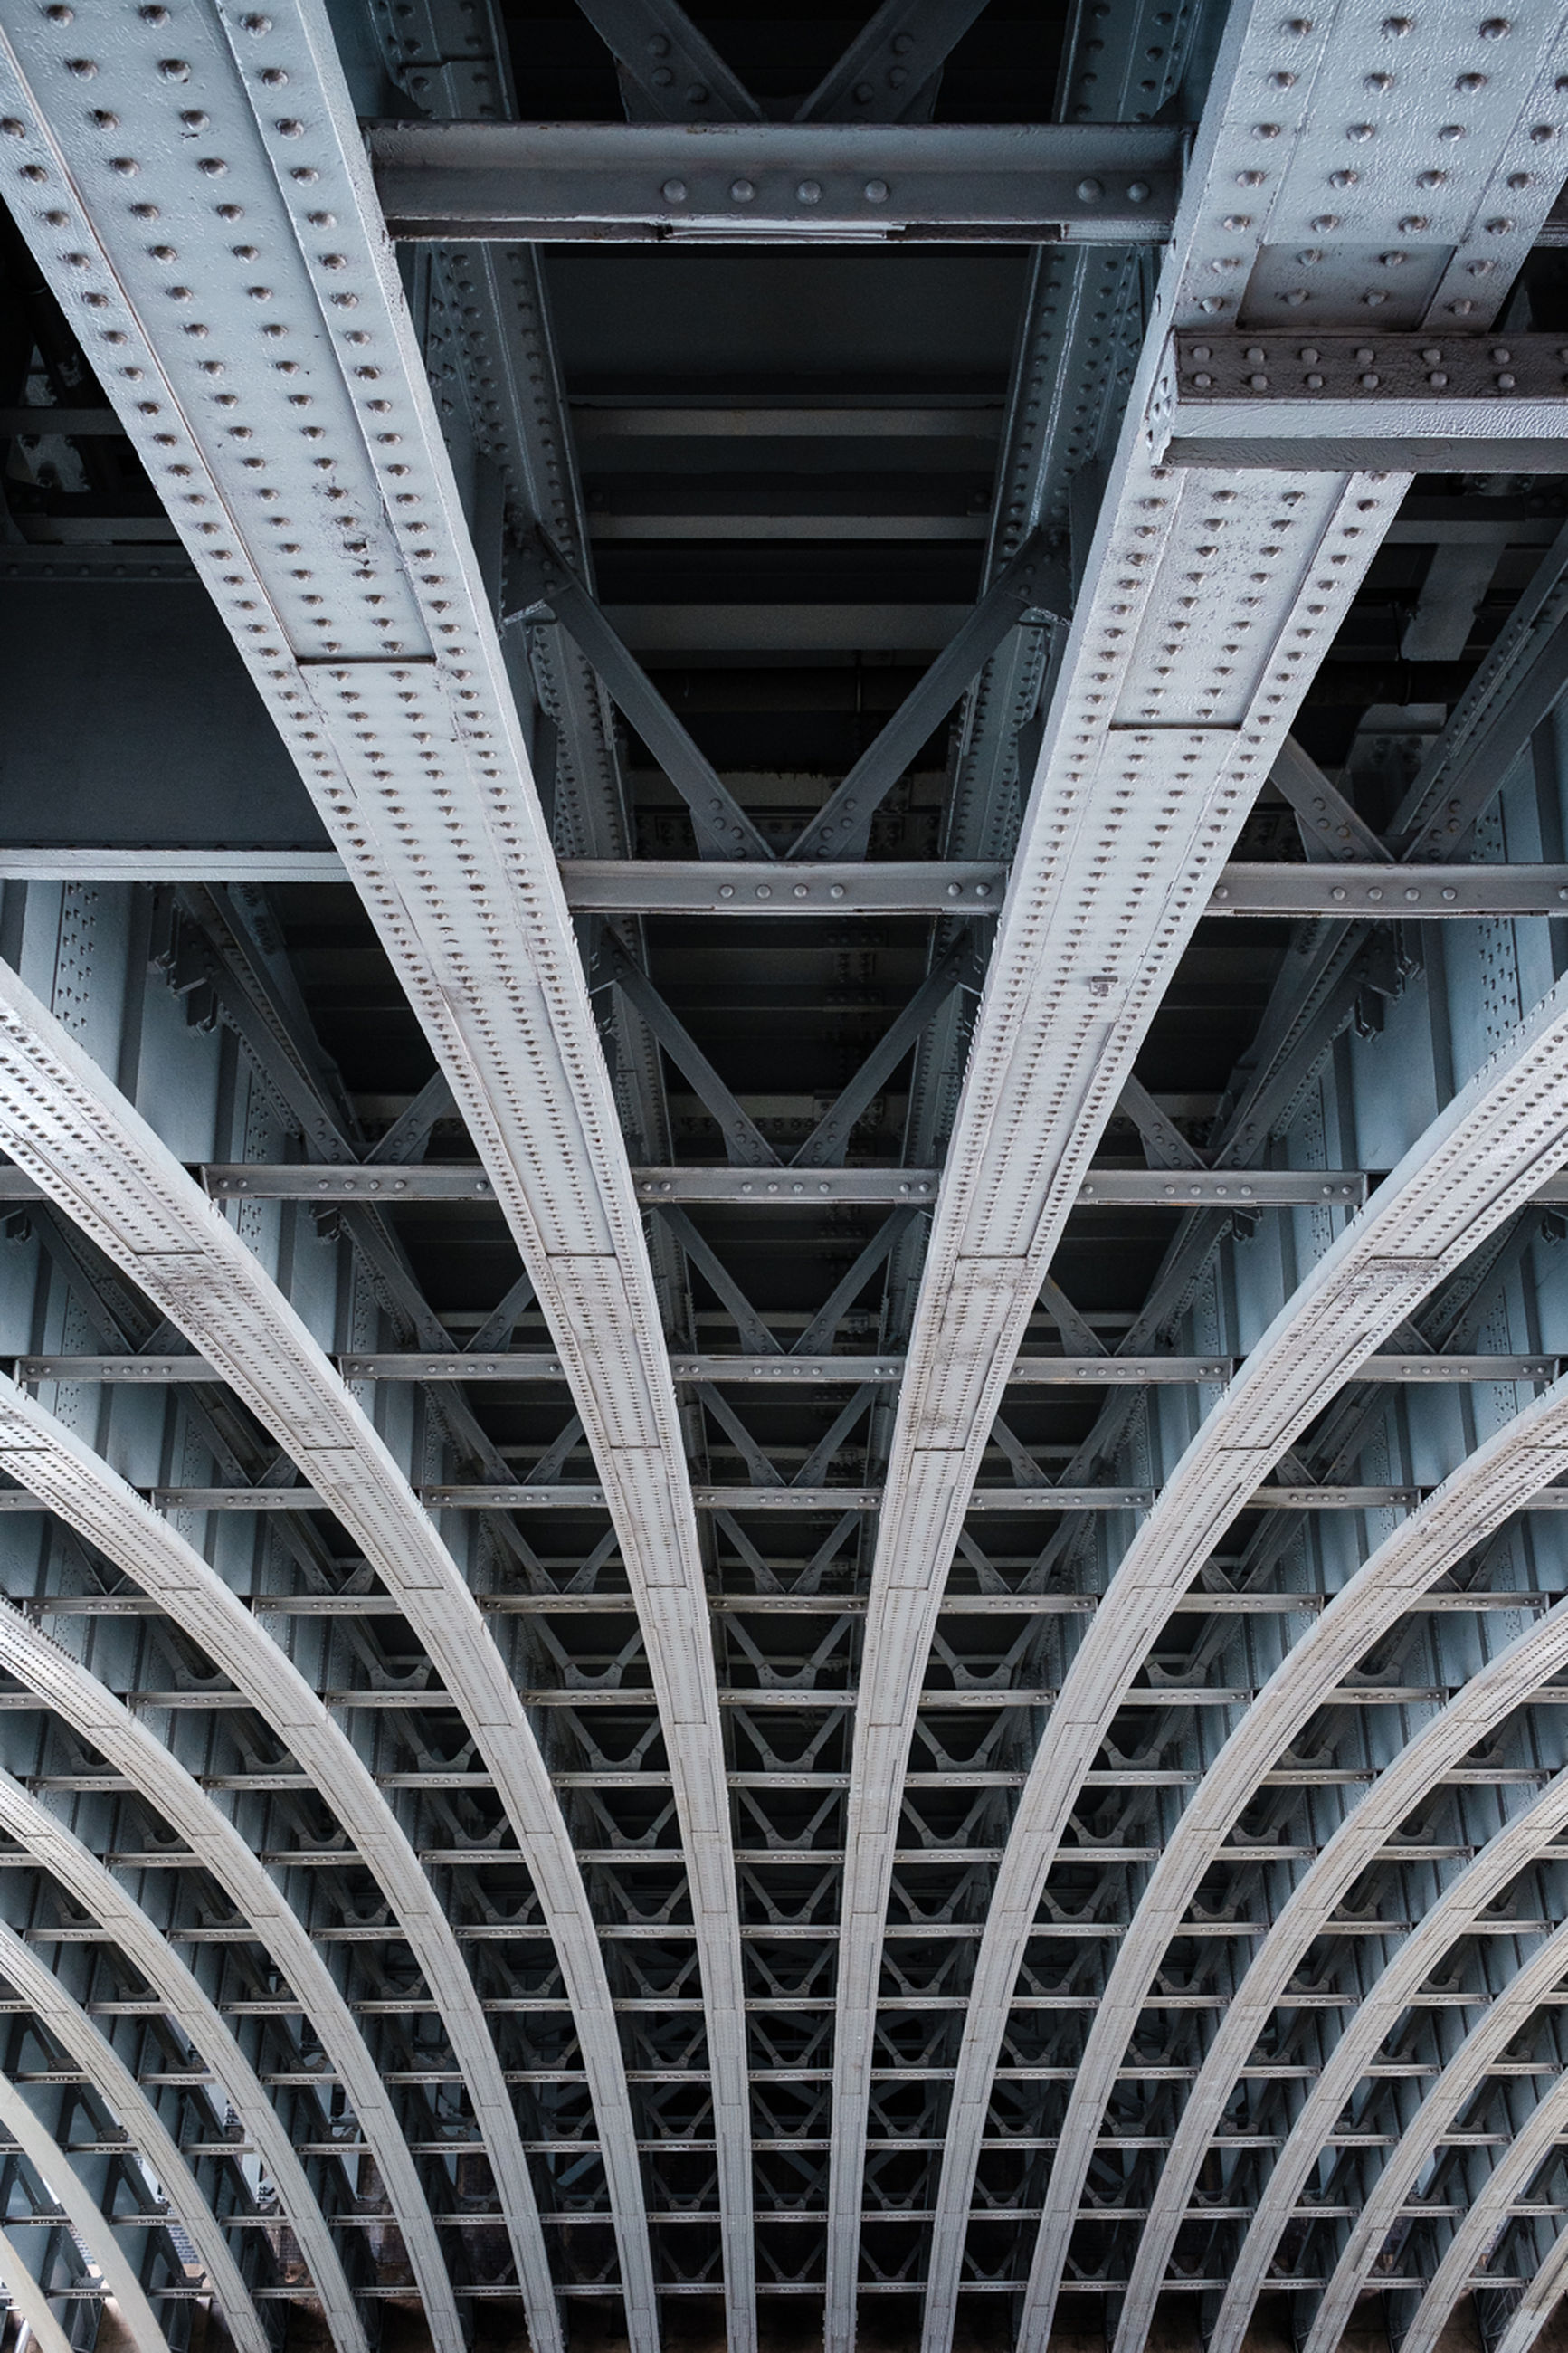 architecture, built structure, low angle view, architectural feature, engineering, modern, design, no people, repetition, backgrounds, diminishing perspective, full frame, directly below, illuminated, sky